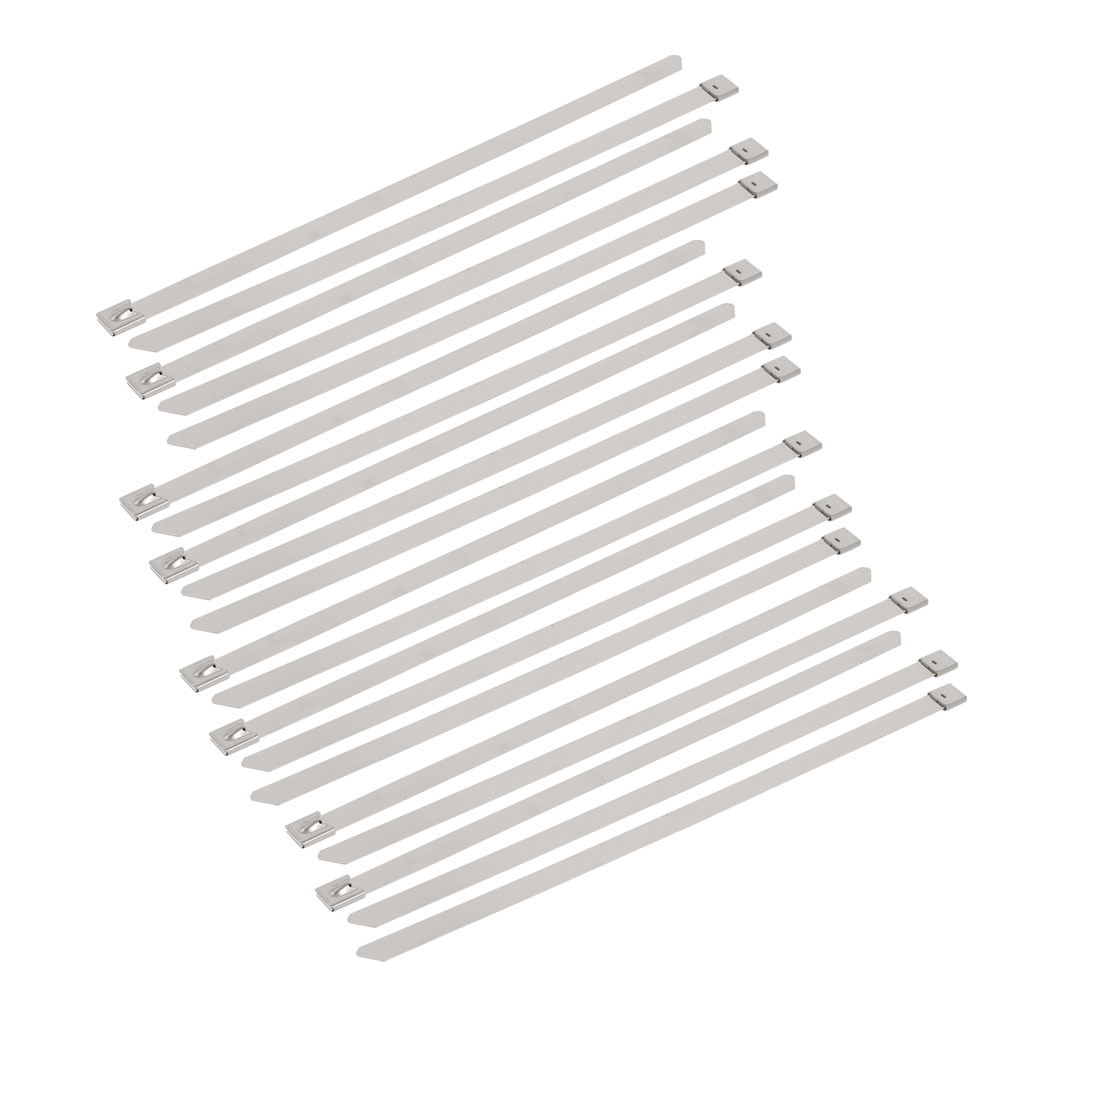 20pcs 10mm Width 300mm Length Stainless Steel Cable Tie Wire Strap Silver Tone